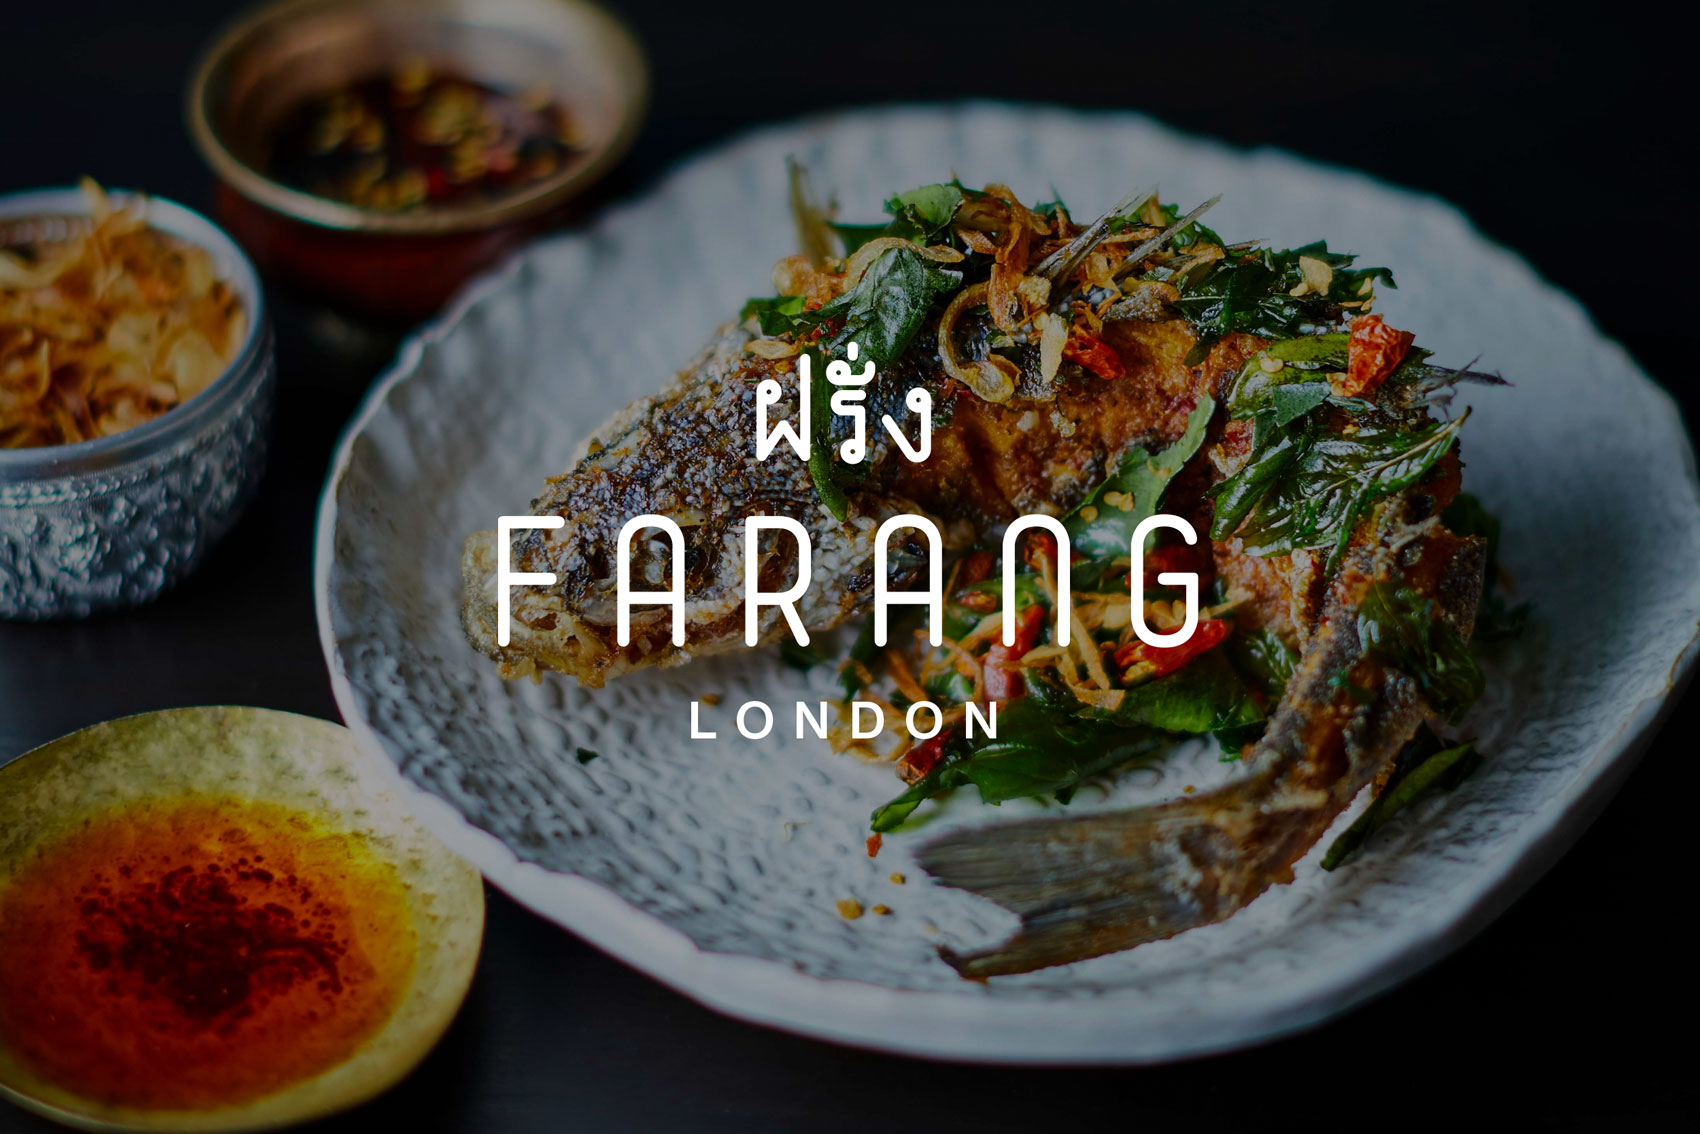 Farang London - Refreshing the identity and website of this award-winning restaurantView project